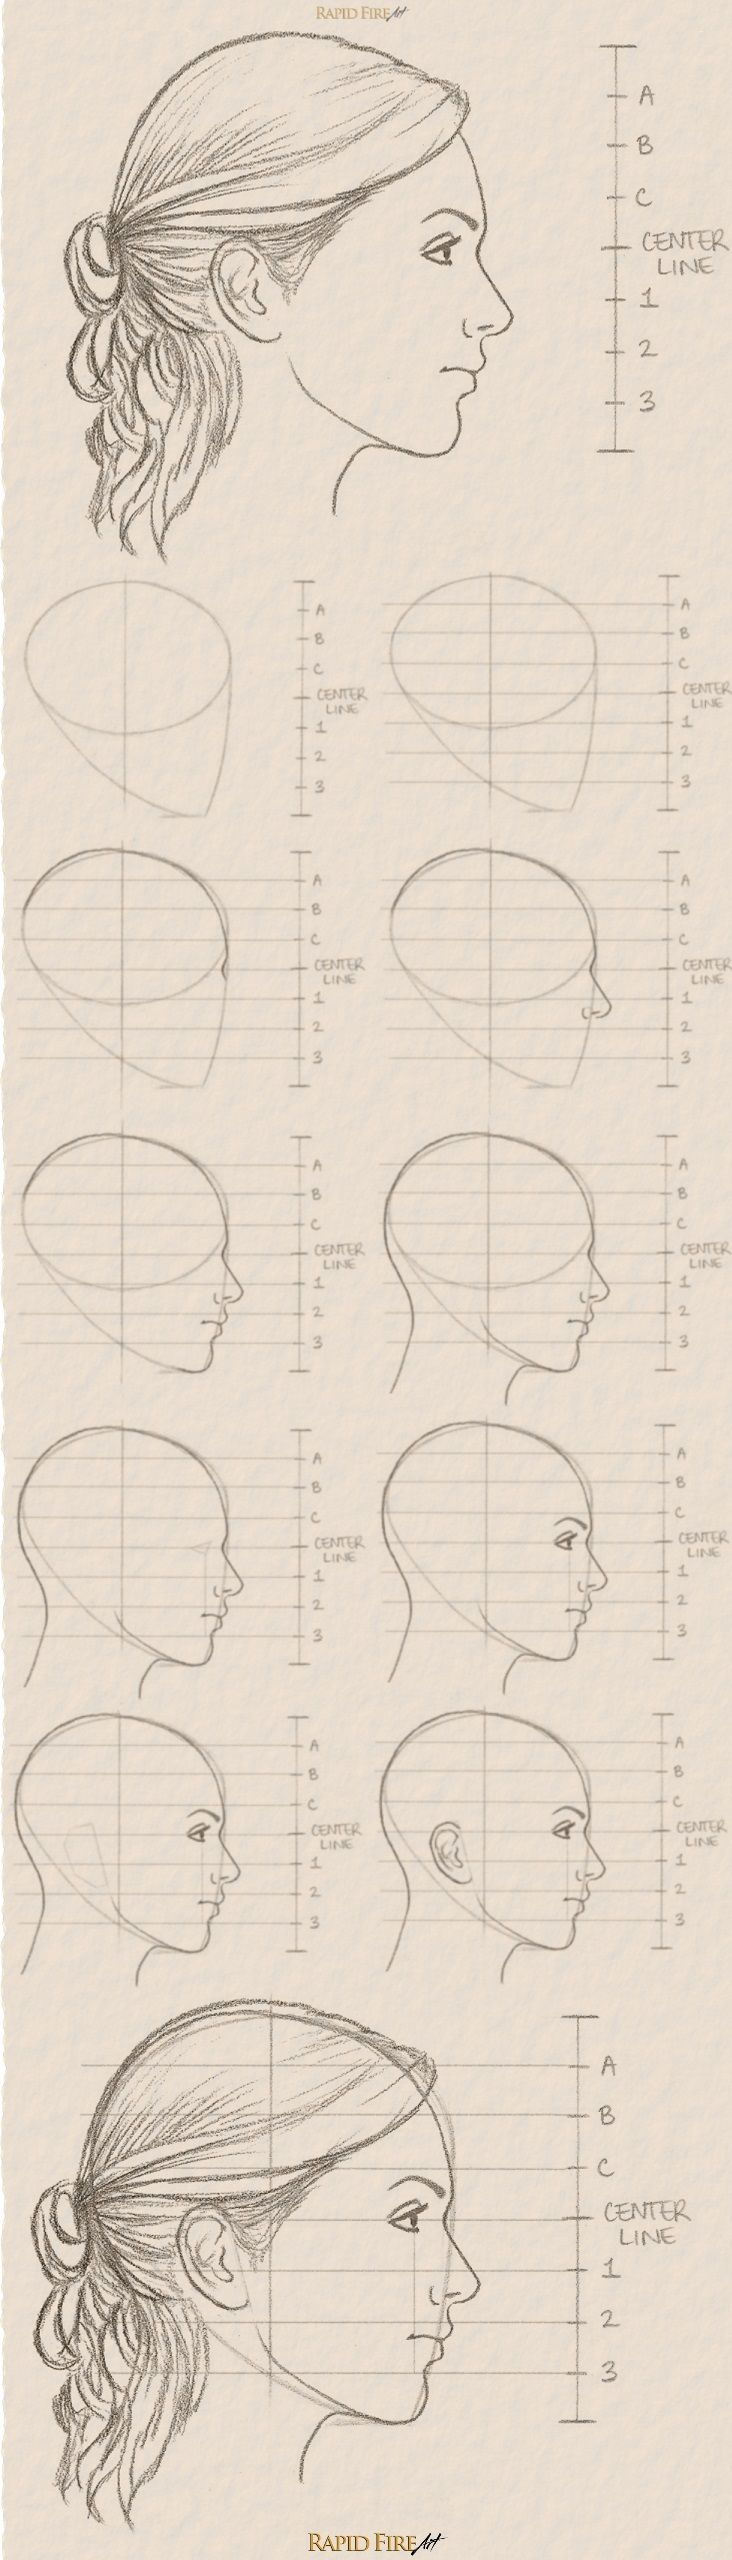 medium resolution of how to draw a female face side view how to draw a face pencil drawings drawing techniques drawing tips